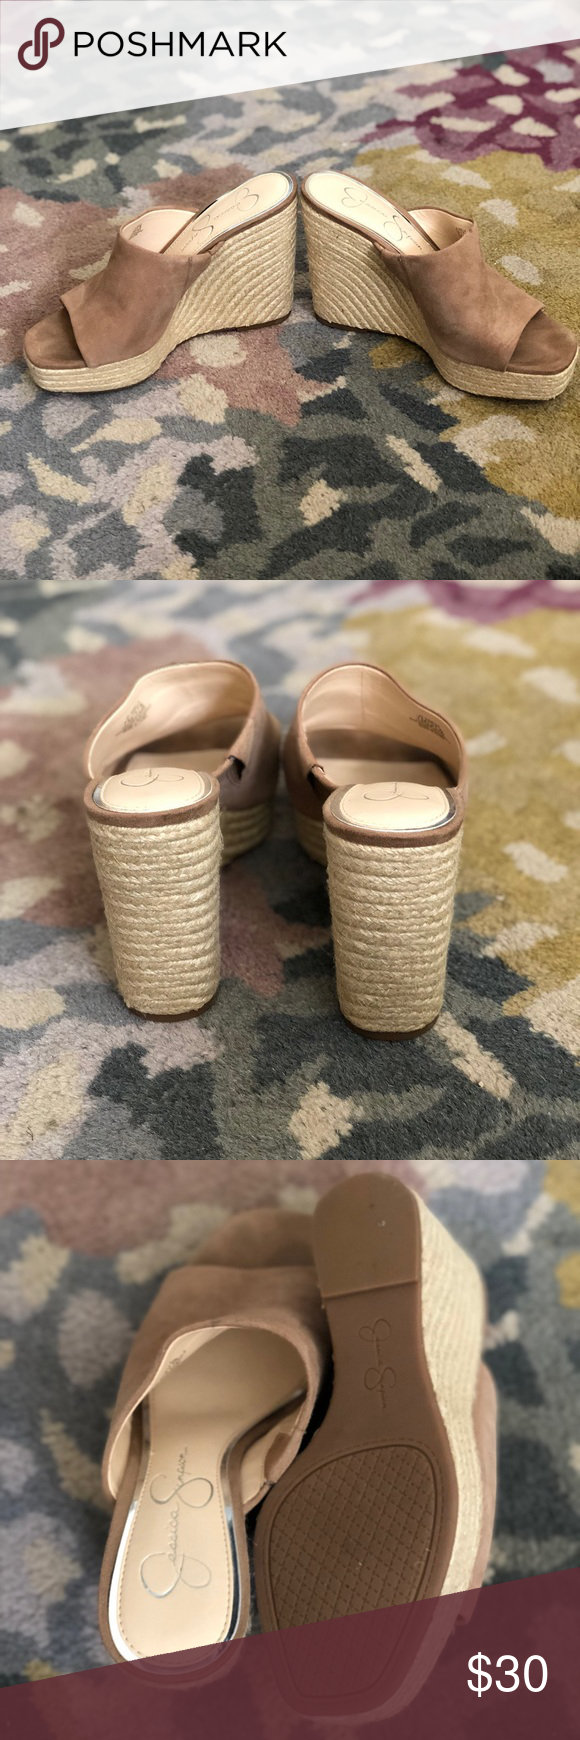 68ecf5d71e8a Jessica Simpson Wedge Espadrille Sandals Jessica Simpson Sirella Platform  Wedge Espadrille Sandals. Worn only once